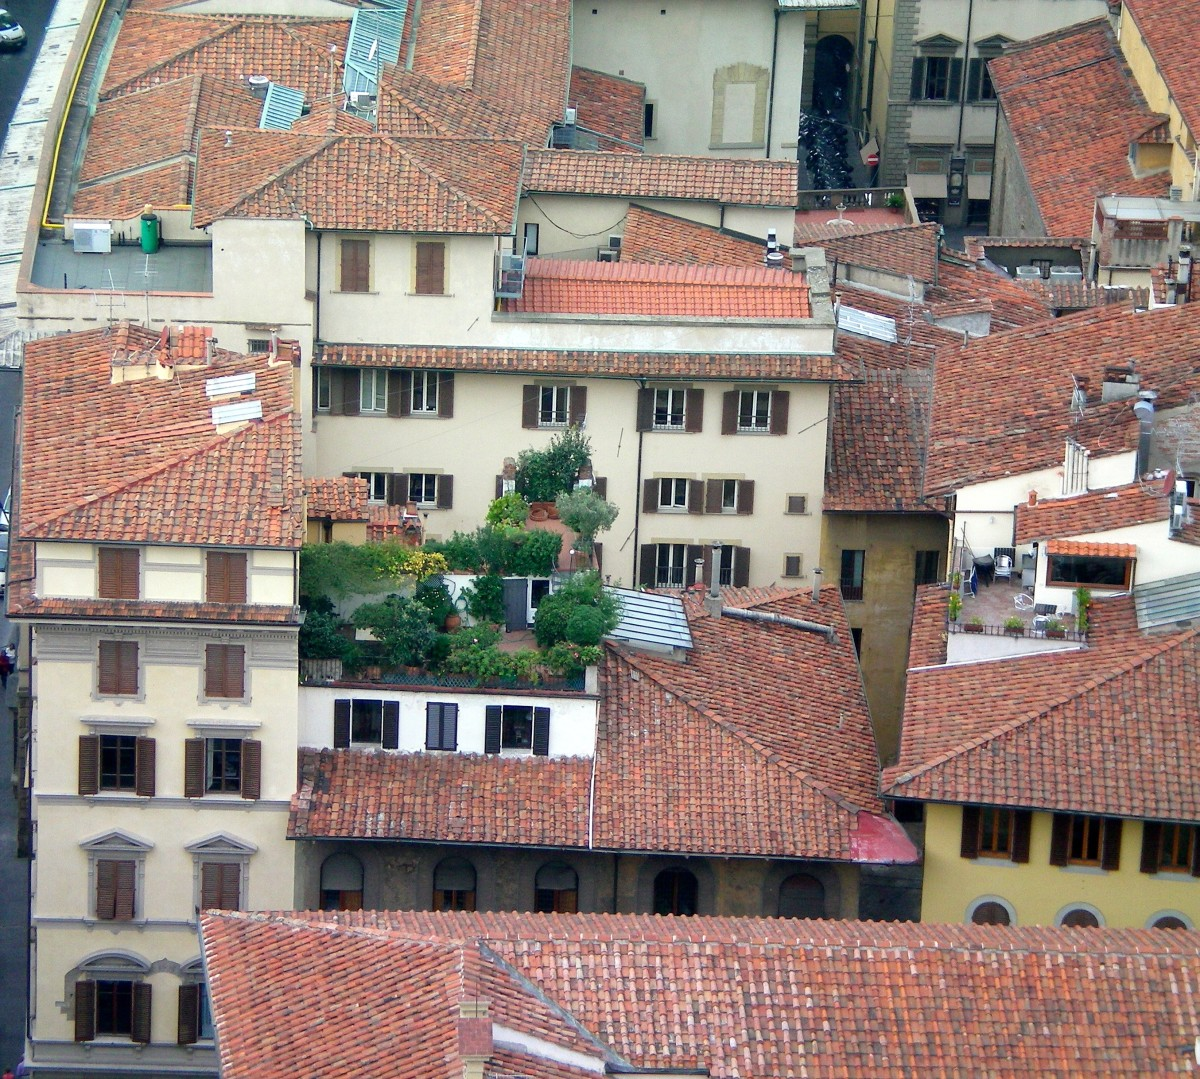 A garden amongst the roof-tops; fresh produce is everywhere in Florence (c) A. Harrison